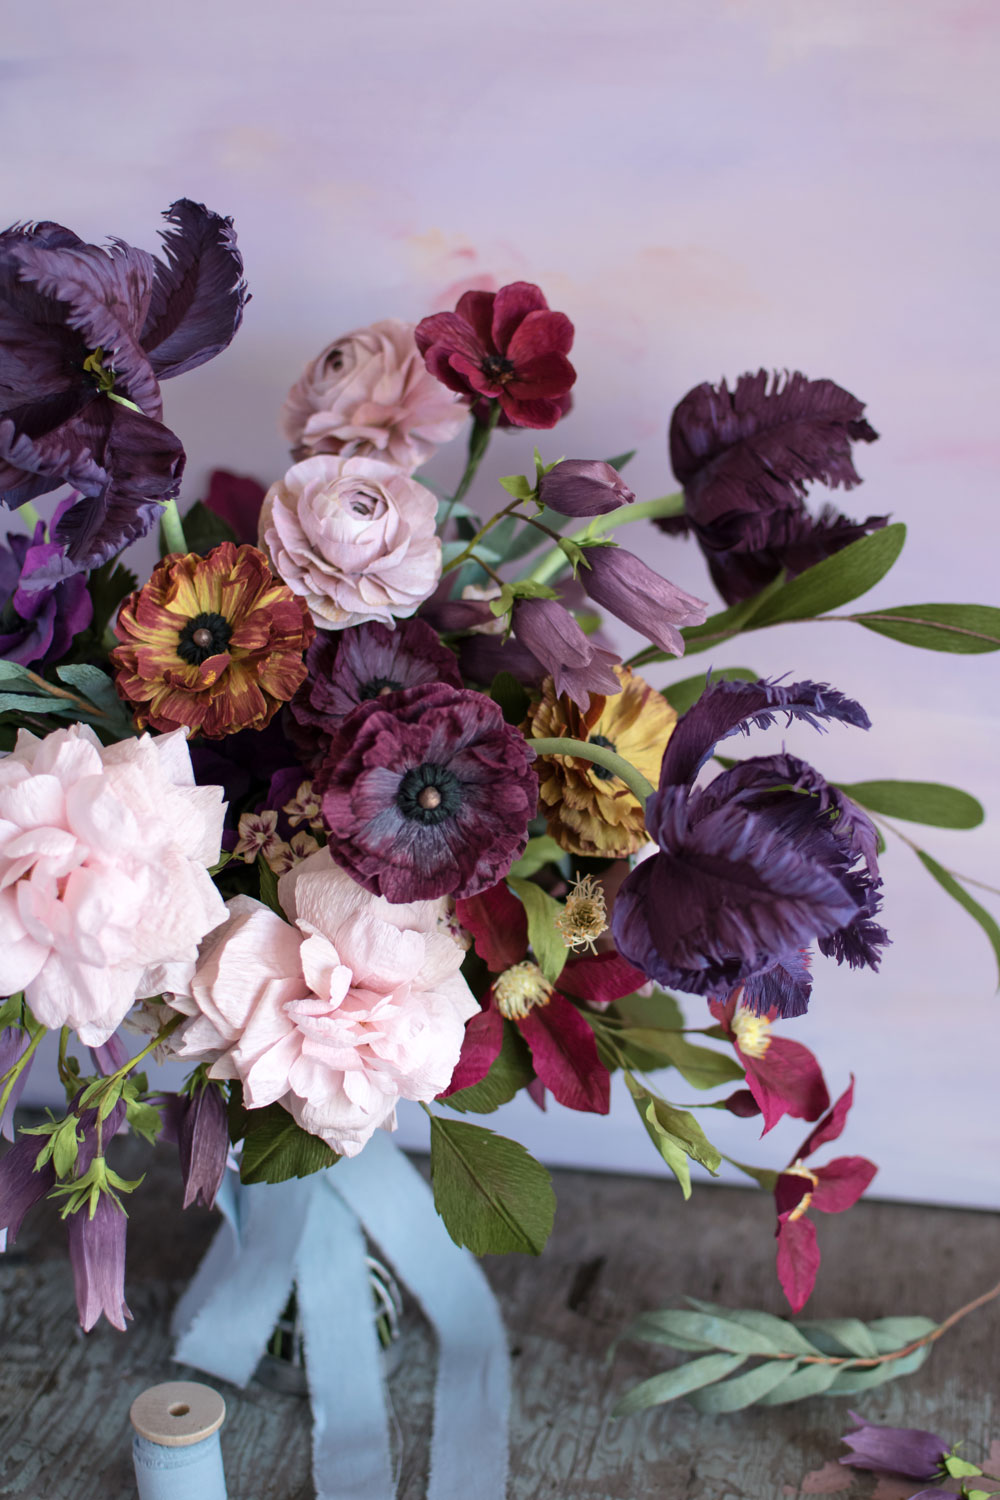 One of the five arrangements in the book - this one is a bouquet